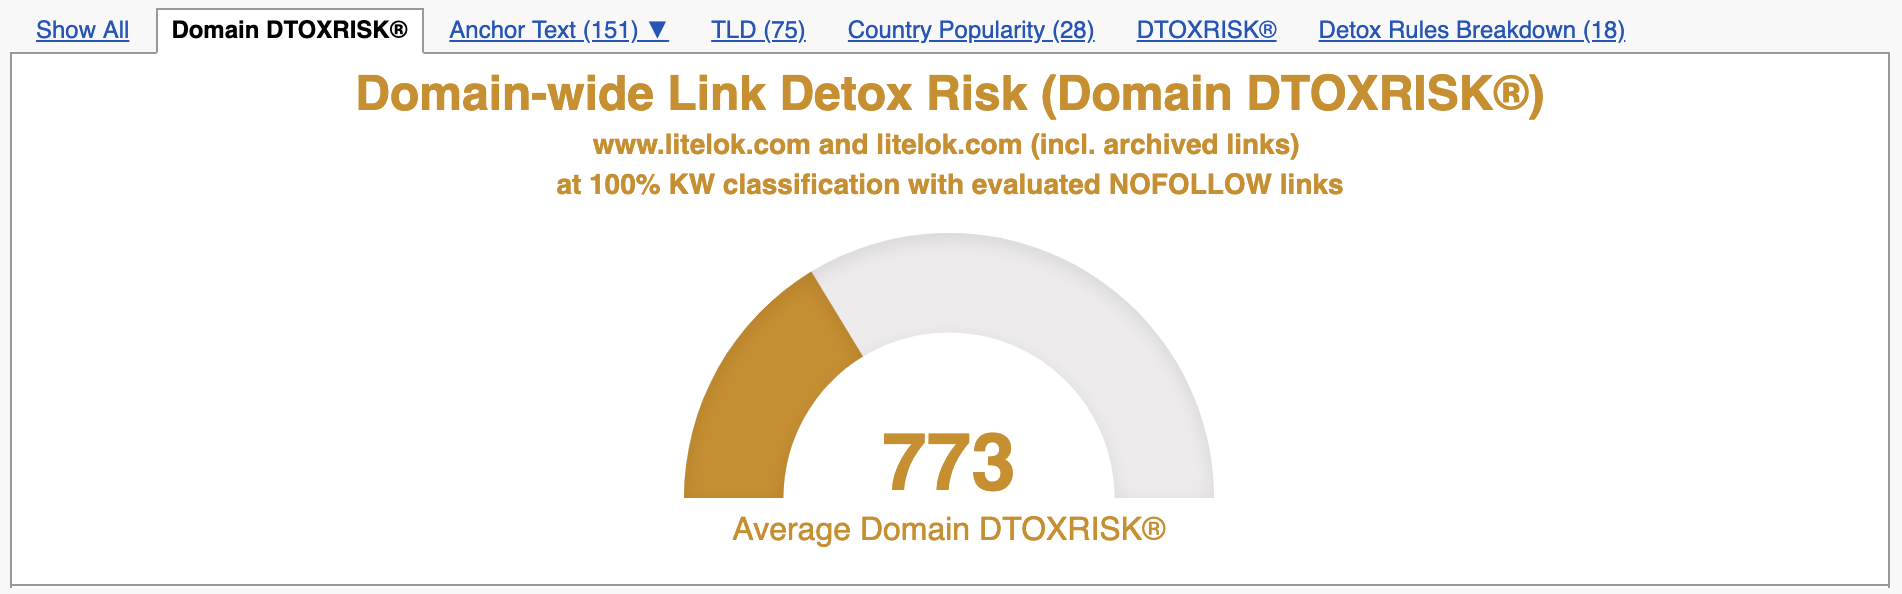 Domain-wide Link Detox Risk = 773 with evaluated NoFollow Links - Classic